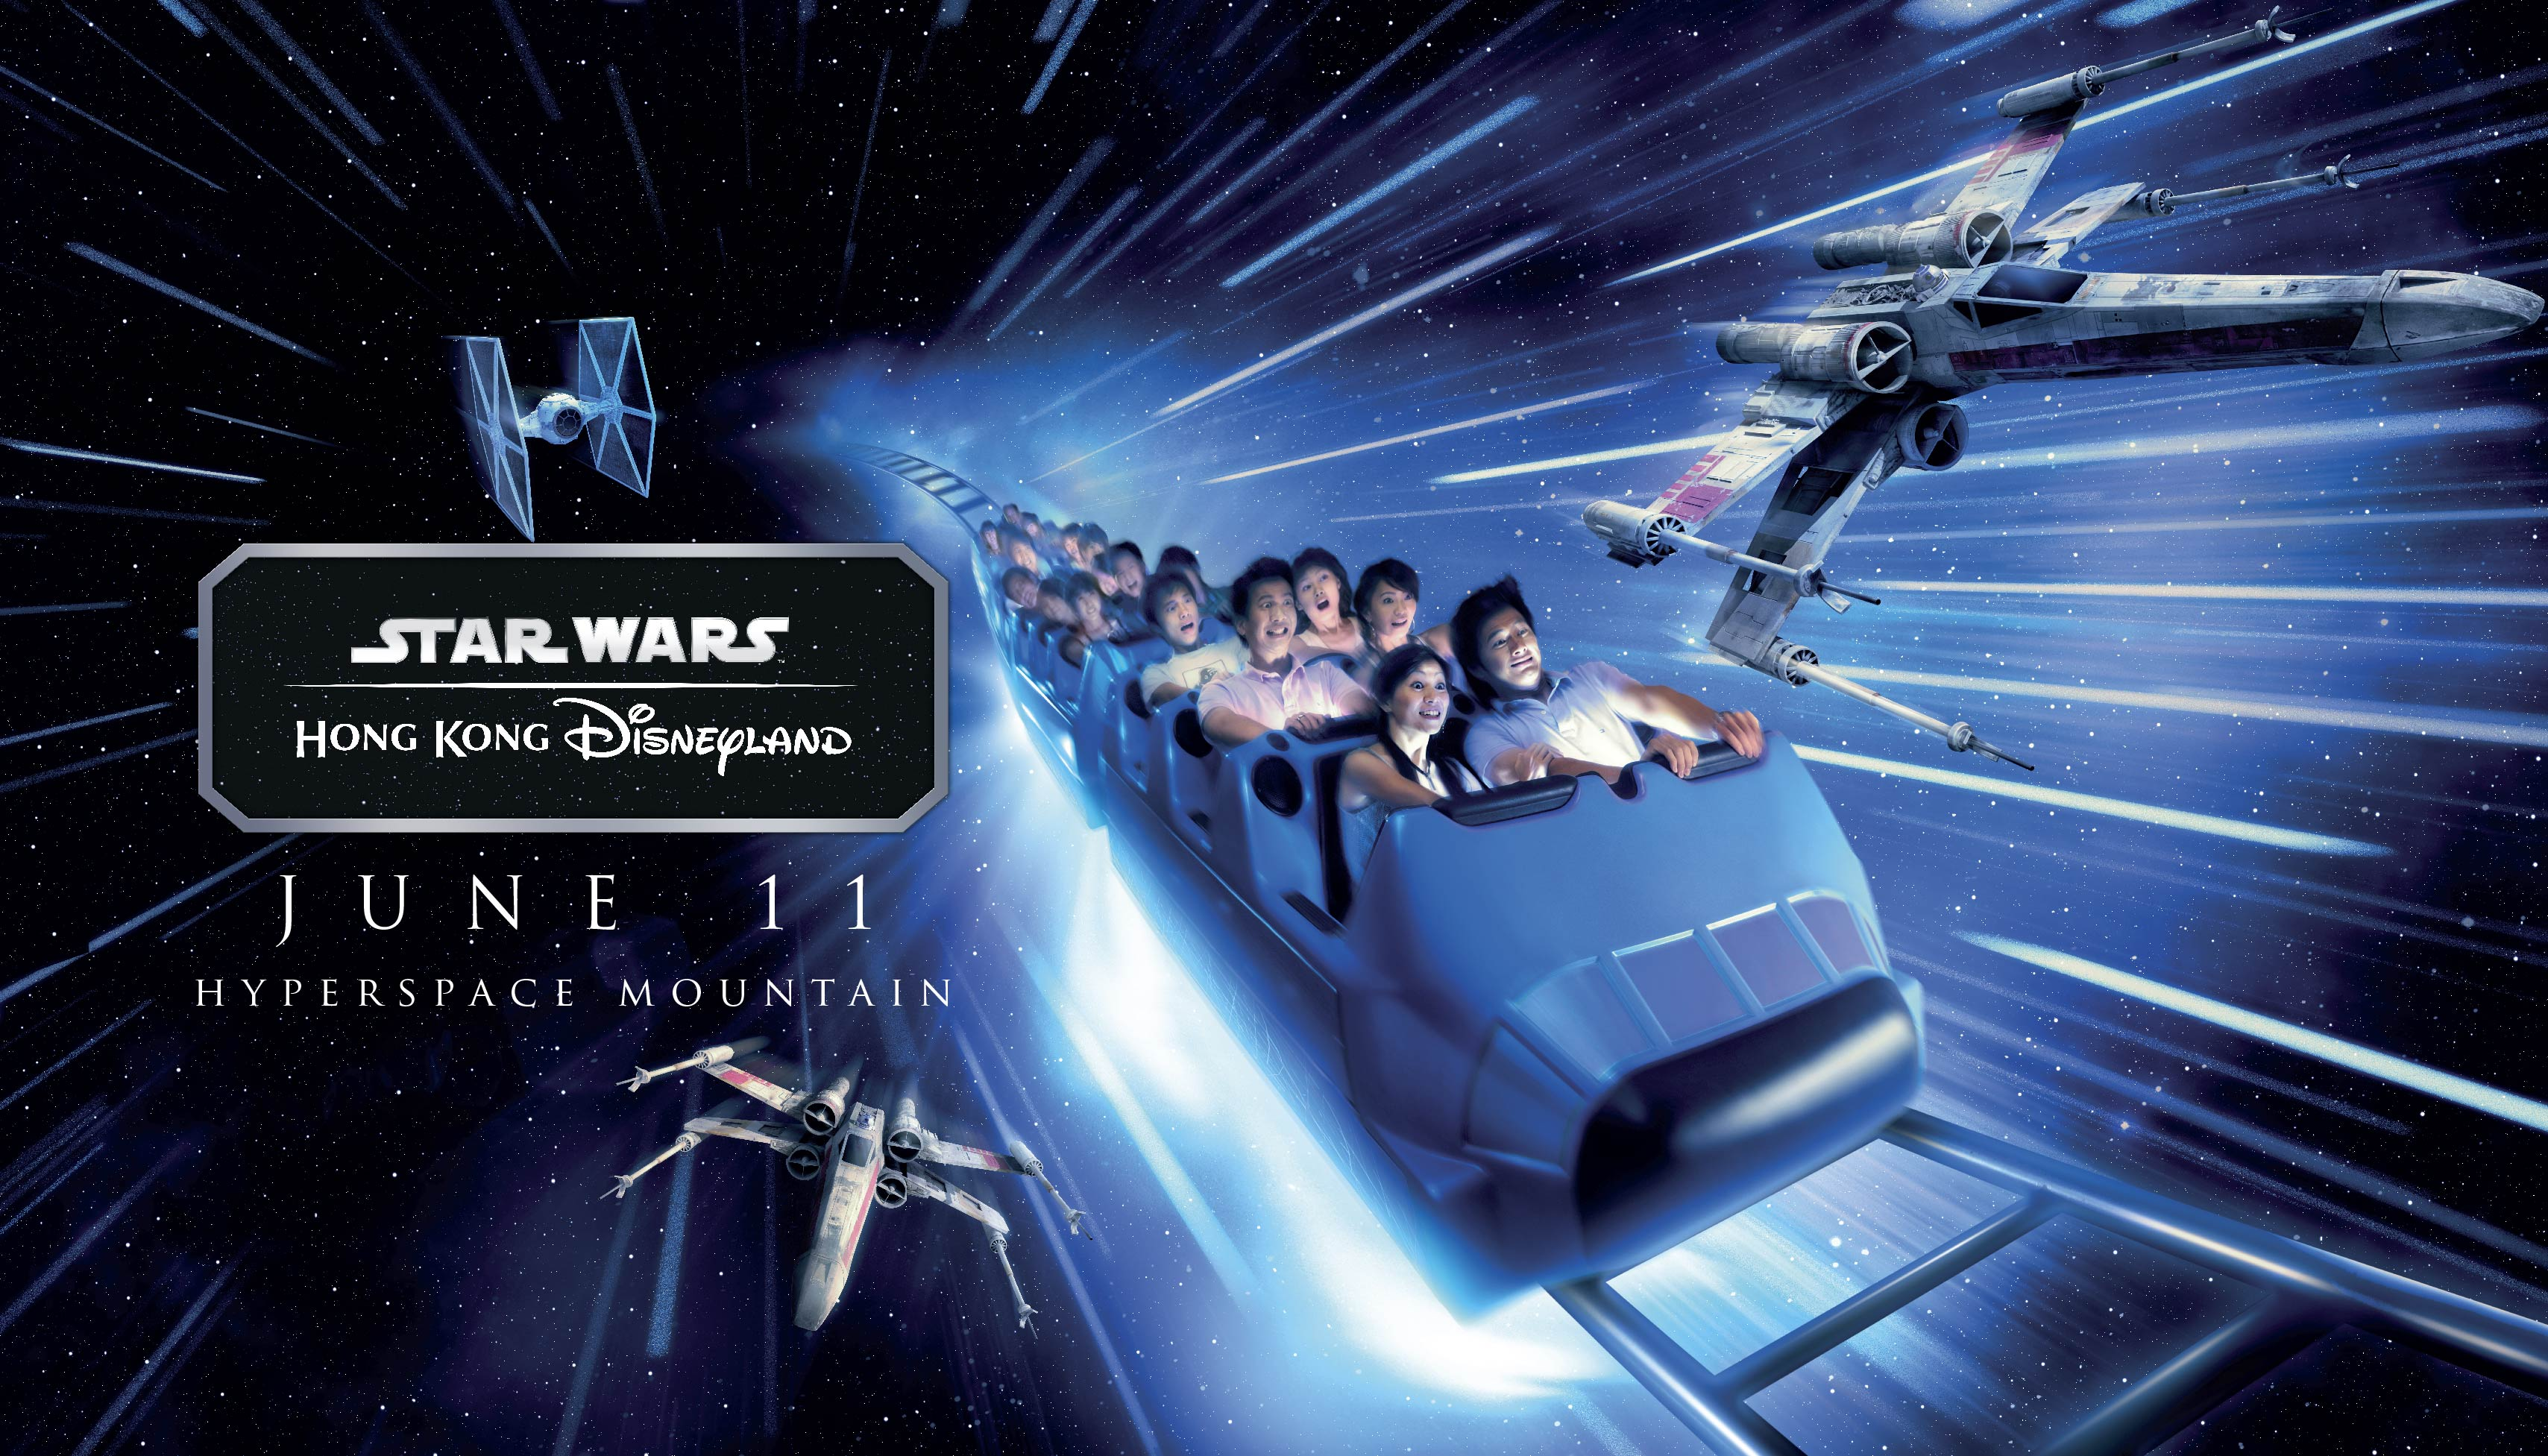 Hong Kong Disneyland_Star Wars Tomorrowland Takeover_Hyperspace Mountain